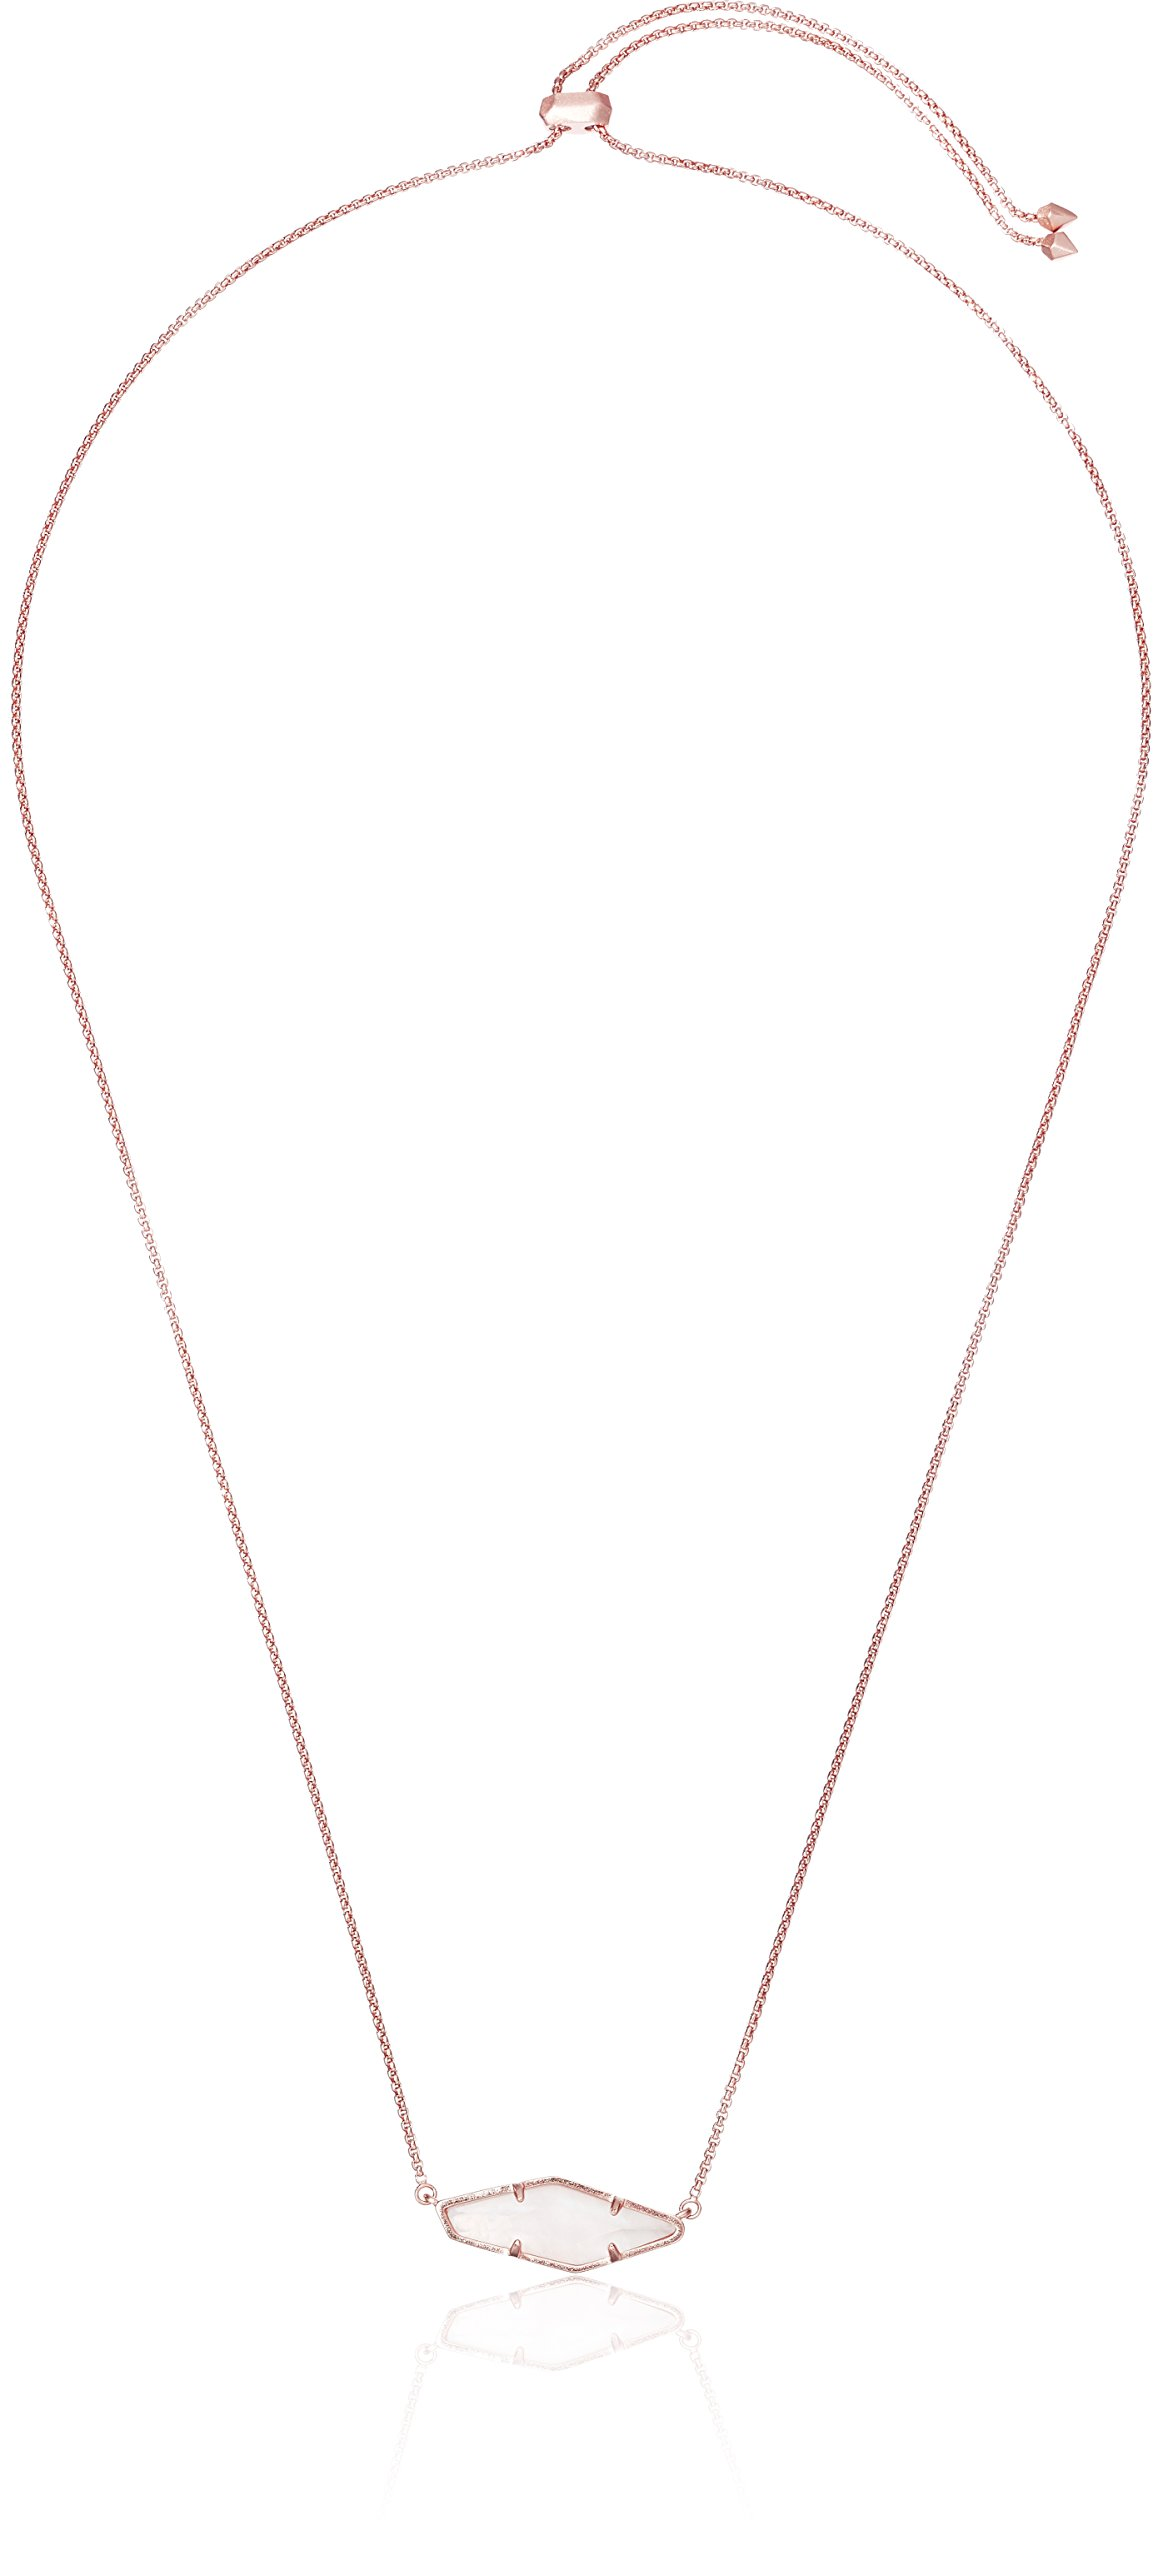 Kendra Scott Beth Rose Gold Ivory Mop Pendant Necklace, 28''